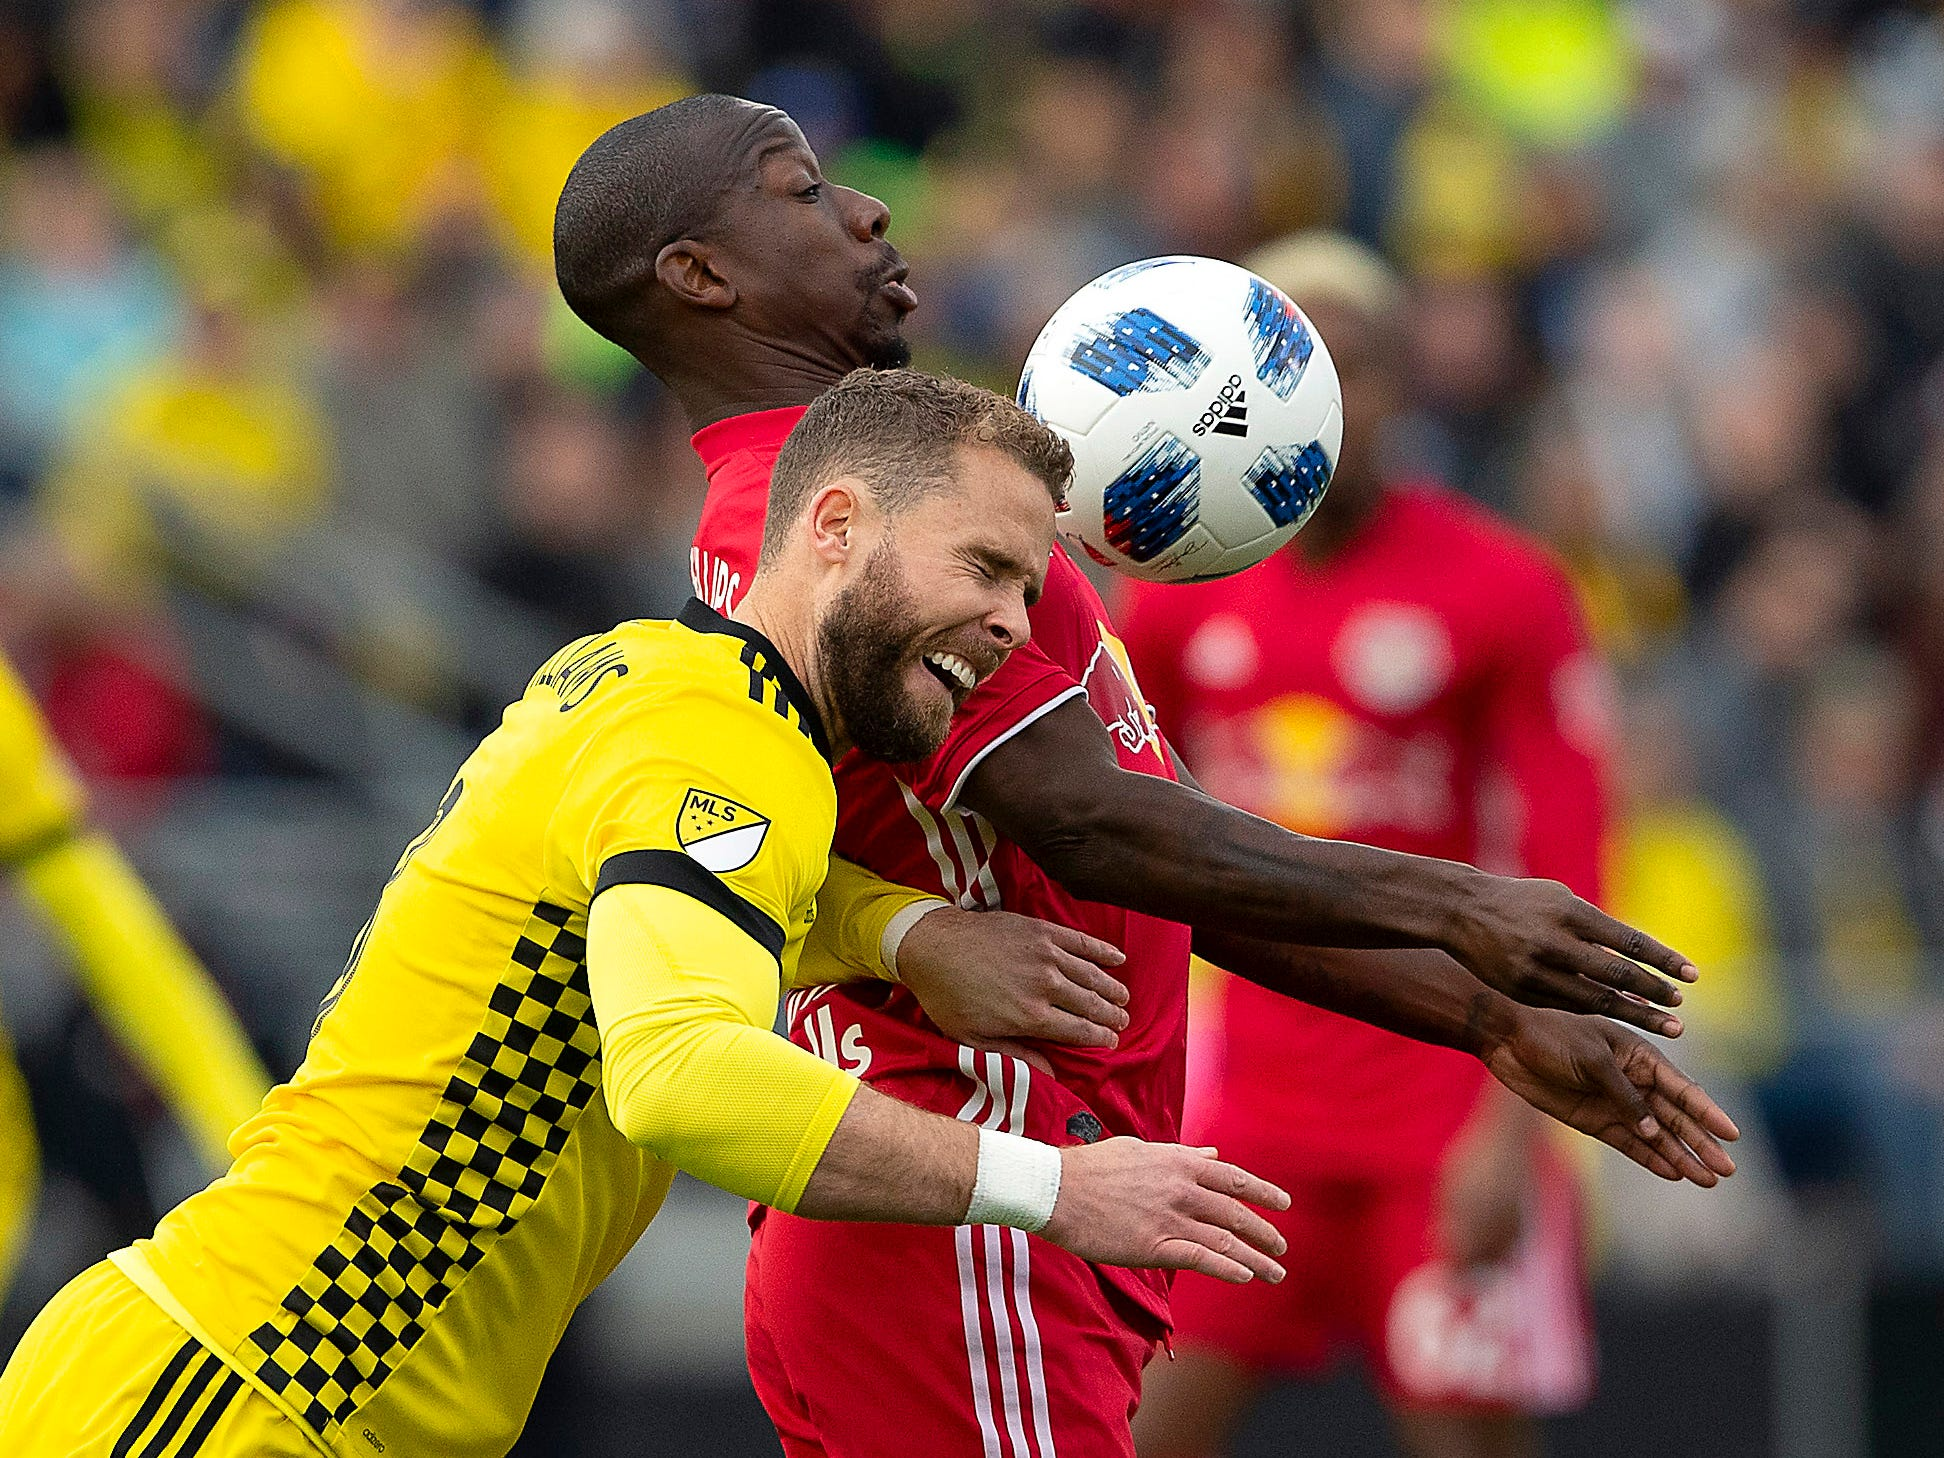 Columbus Crew SC defender Josh Williams goes up for a header against New York Red Bulls forward Bradley Wright-Phillips during the first half at Mapfre Stadium.